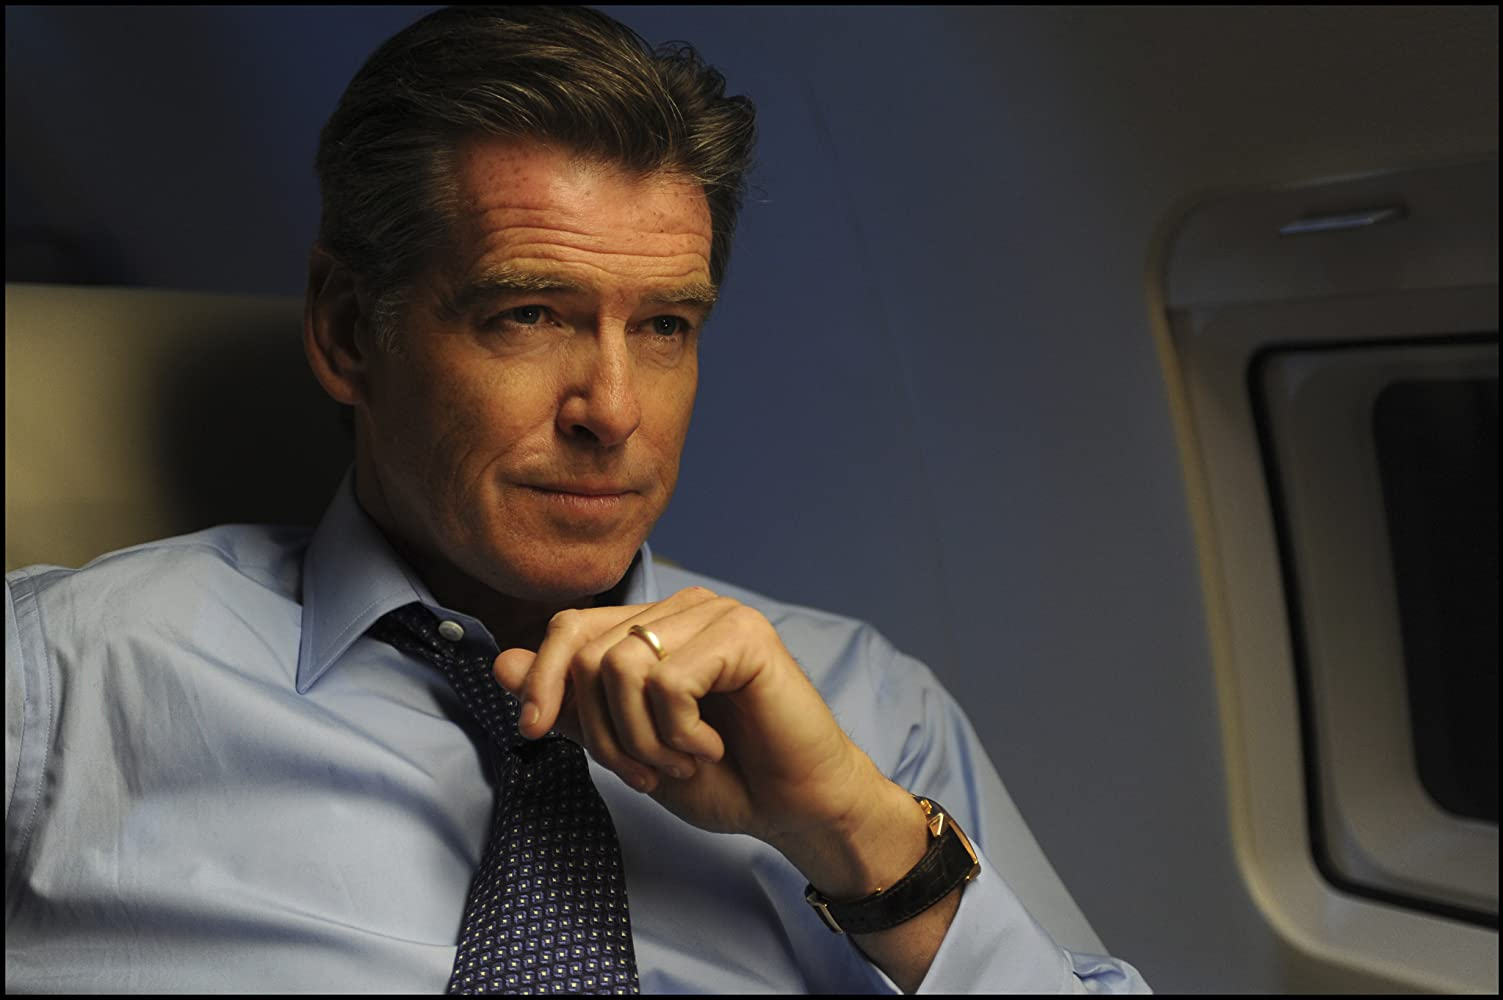 Pierce Brosnan in The Ghost Writer (2010)